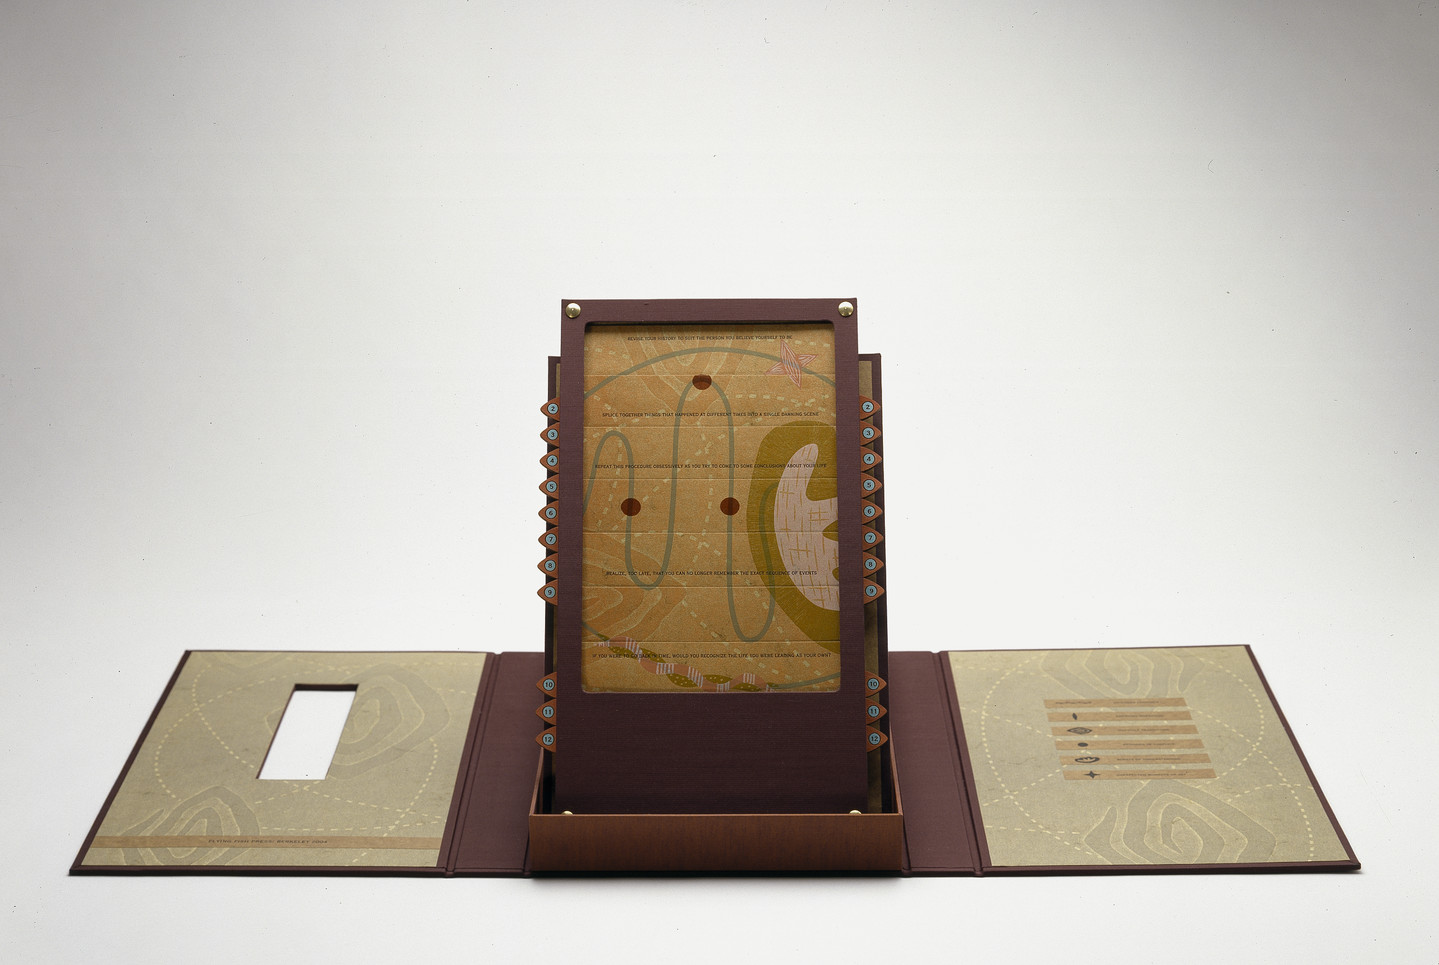 An open maroon portfolio with contents displayed upright in center. Upright panel is an abstract image with red circles connected by a curving green line on a mustard yellow background.